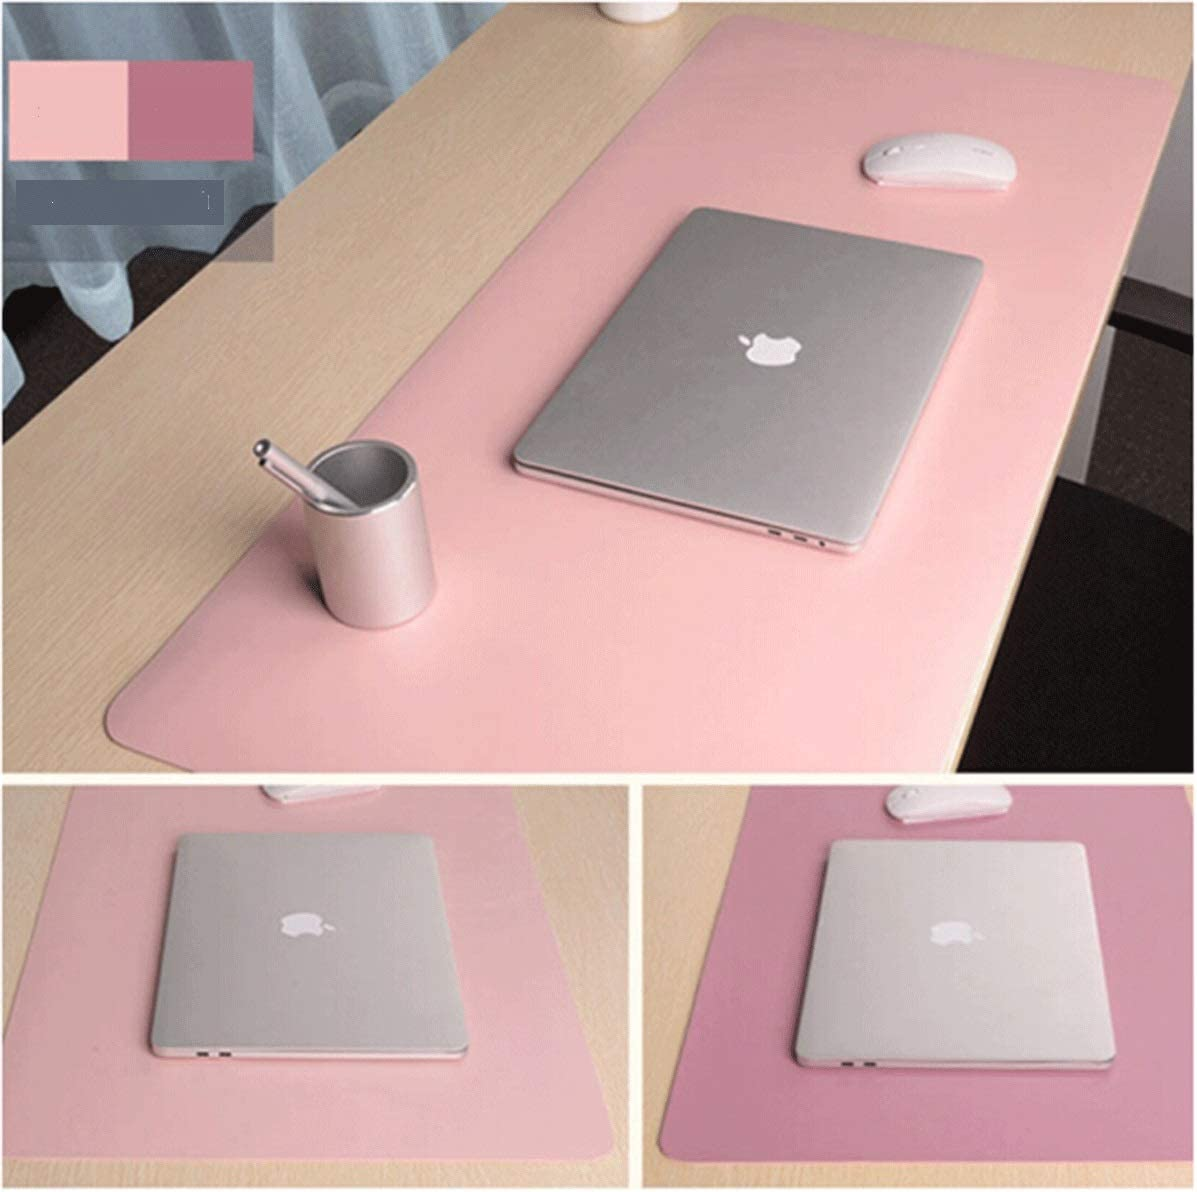 Pink//Pink Office Game Table Mat Large Desktop Waterproof Mouse Pad Mouse Pad Oversized Desk Desk Pad 9045CM Purple, Double-Sided//Two-Color Mouse Pad Sky Blue